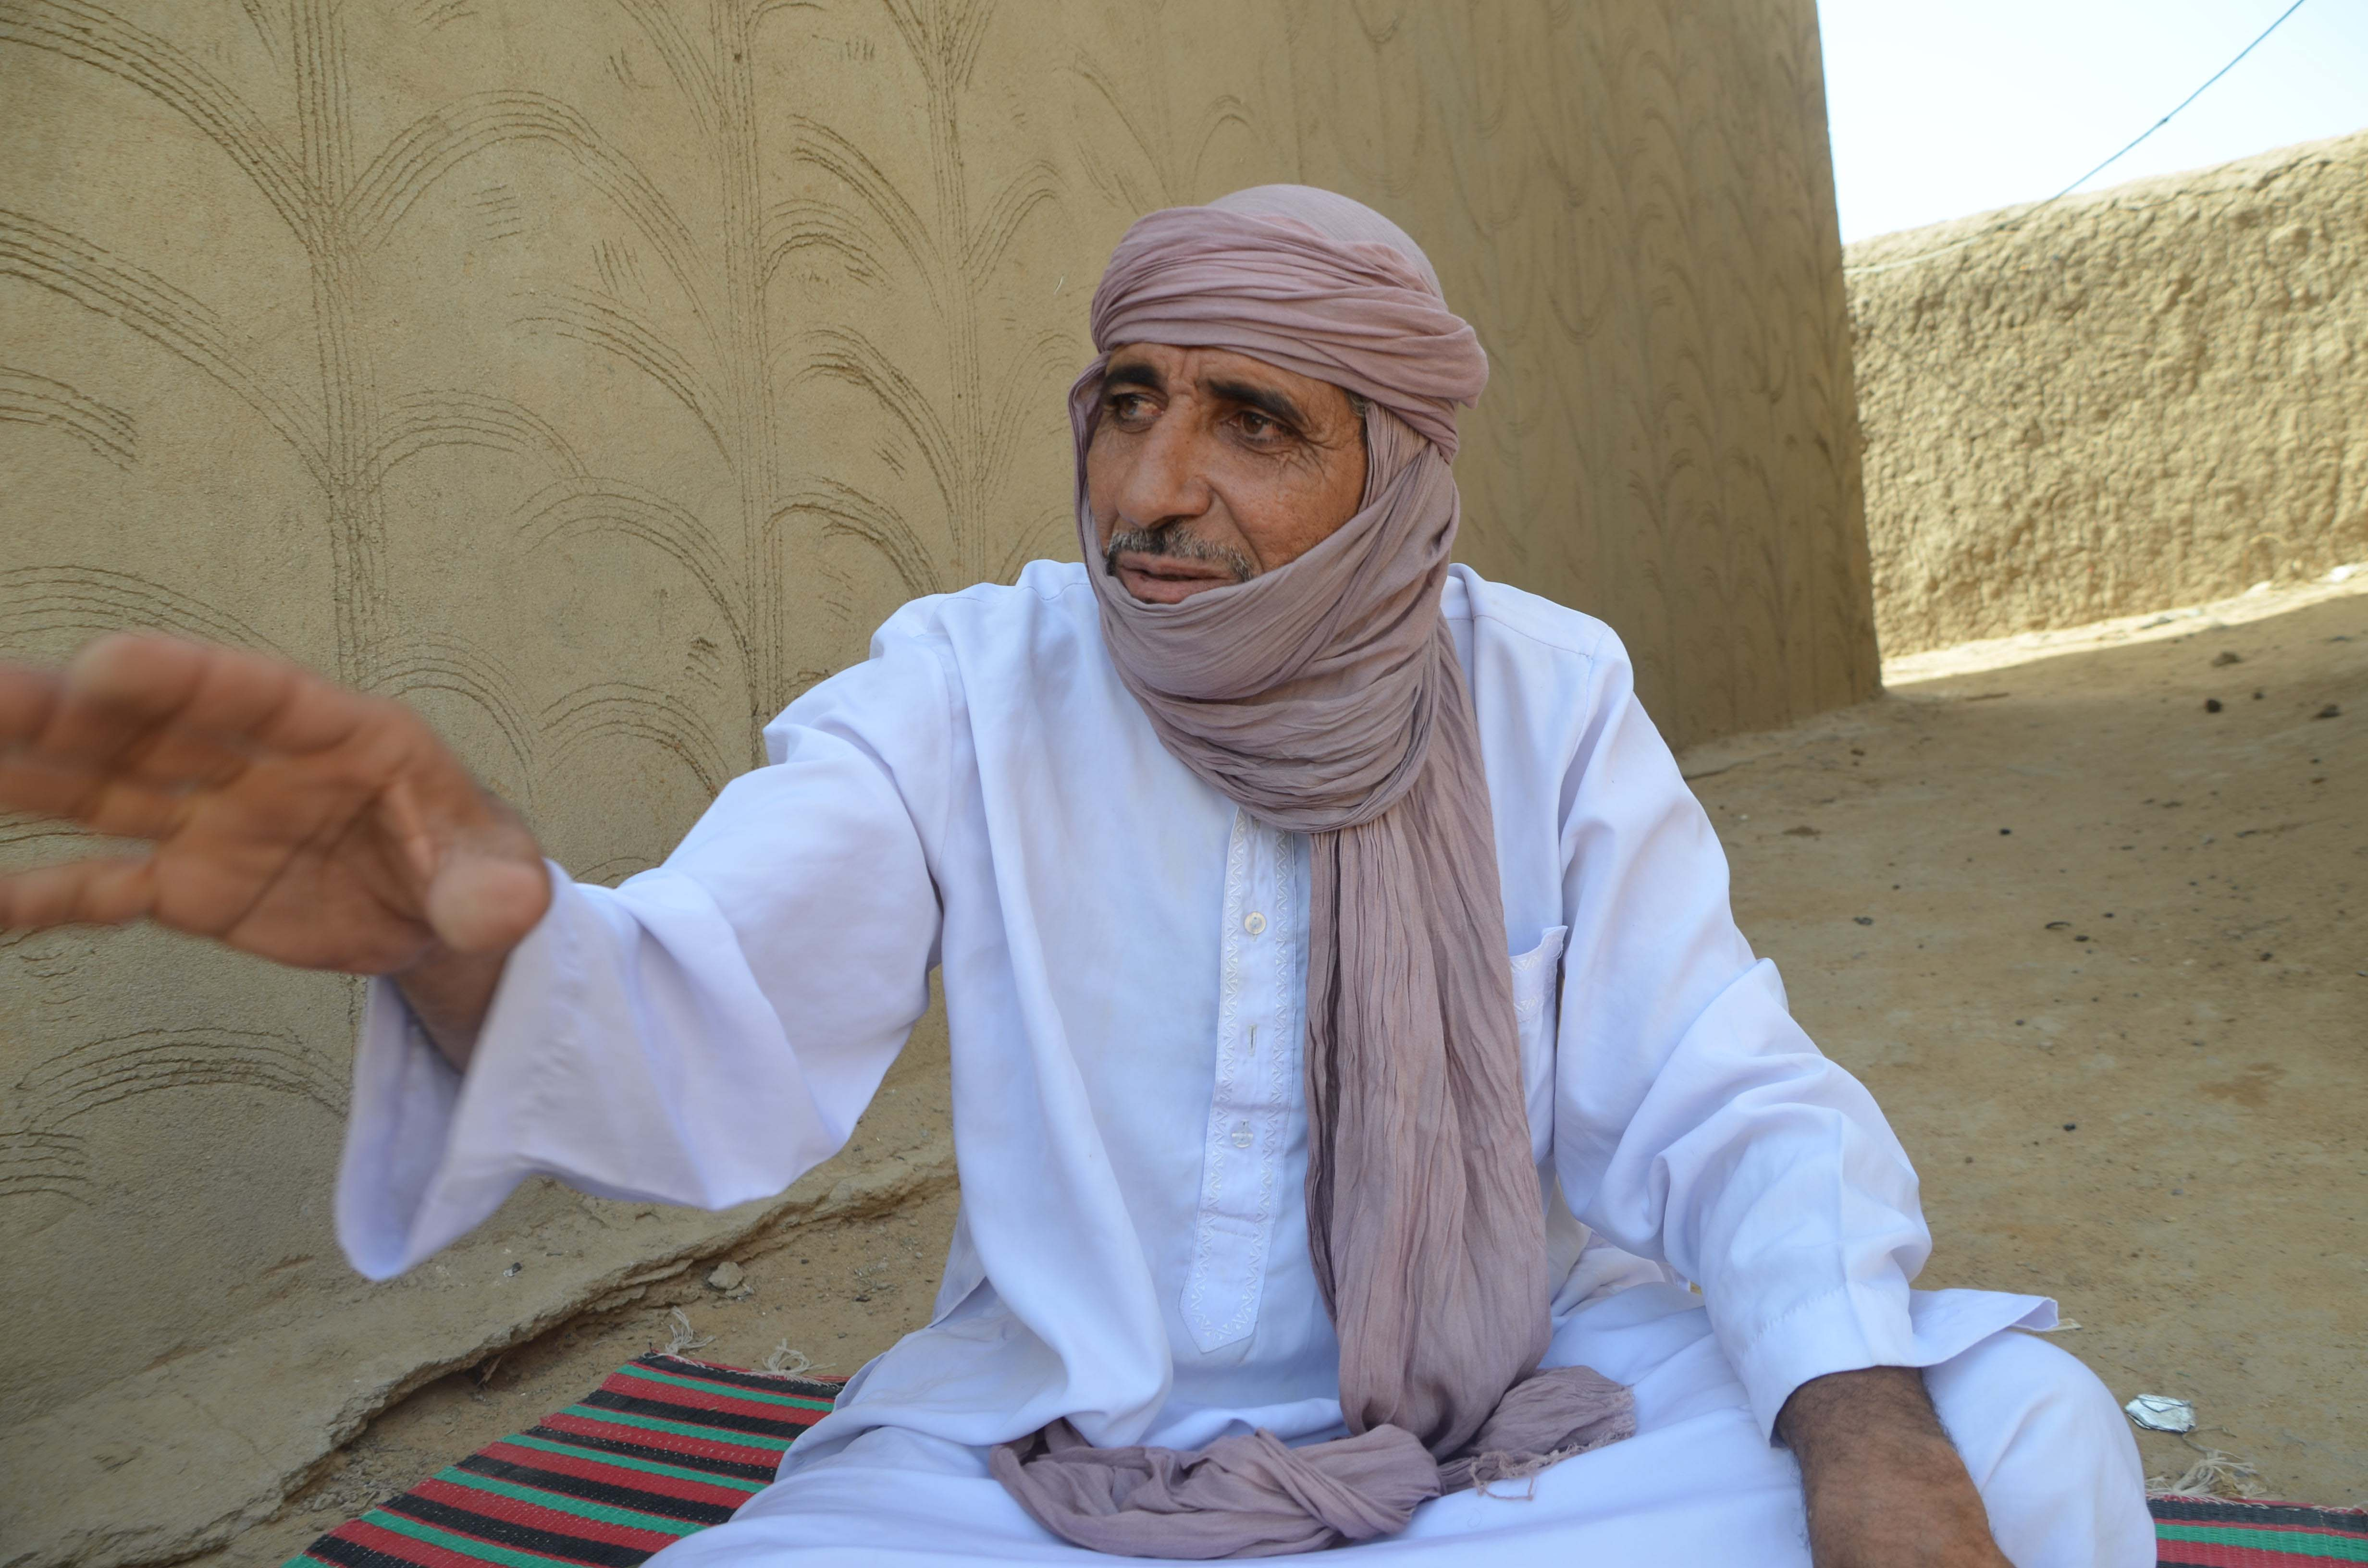 Najim Ould Abdallah, a shop-keeper from Gao, fled his house to stay at a friends when he heard the Malian army had arrived. He stayed there for 20 days and upon returning, found his house had been looted. A neighbour told him Malian soldiers had broken in